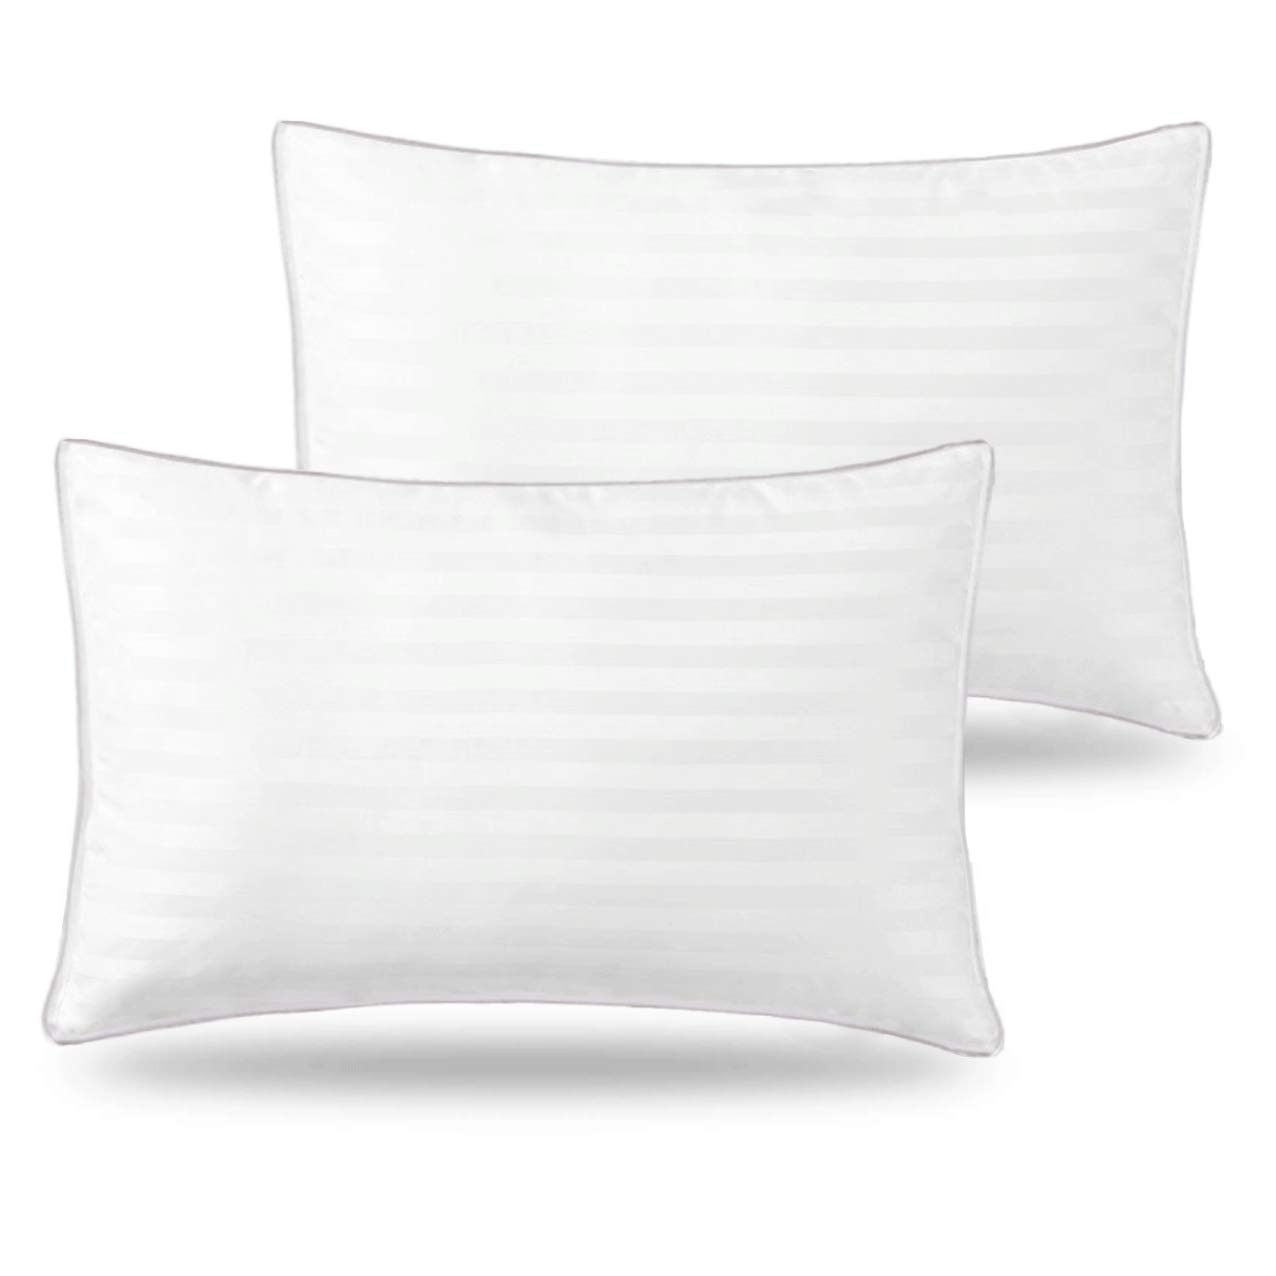 Basic Beyond Down Alternative Bed Pillow - 2 Pack Hotel Collection Super Soft Firm Pillow for Sleeping with Hypoallergenic Bamboo Materials Fill, Standard Size